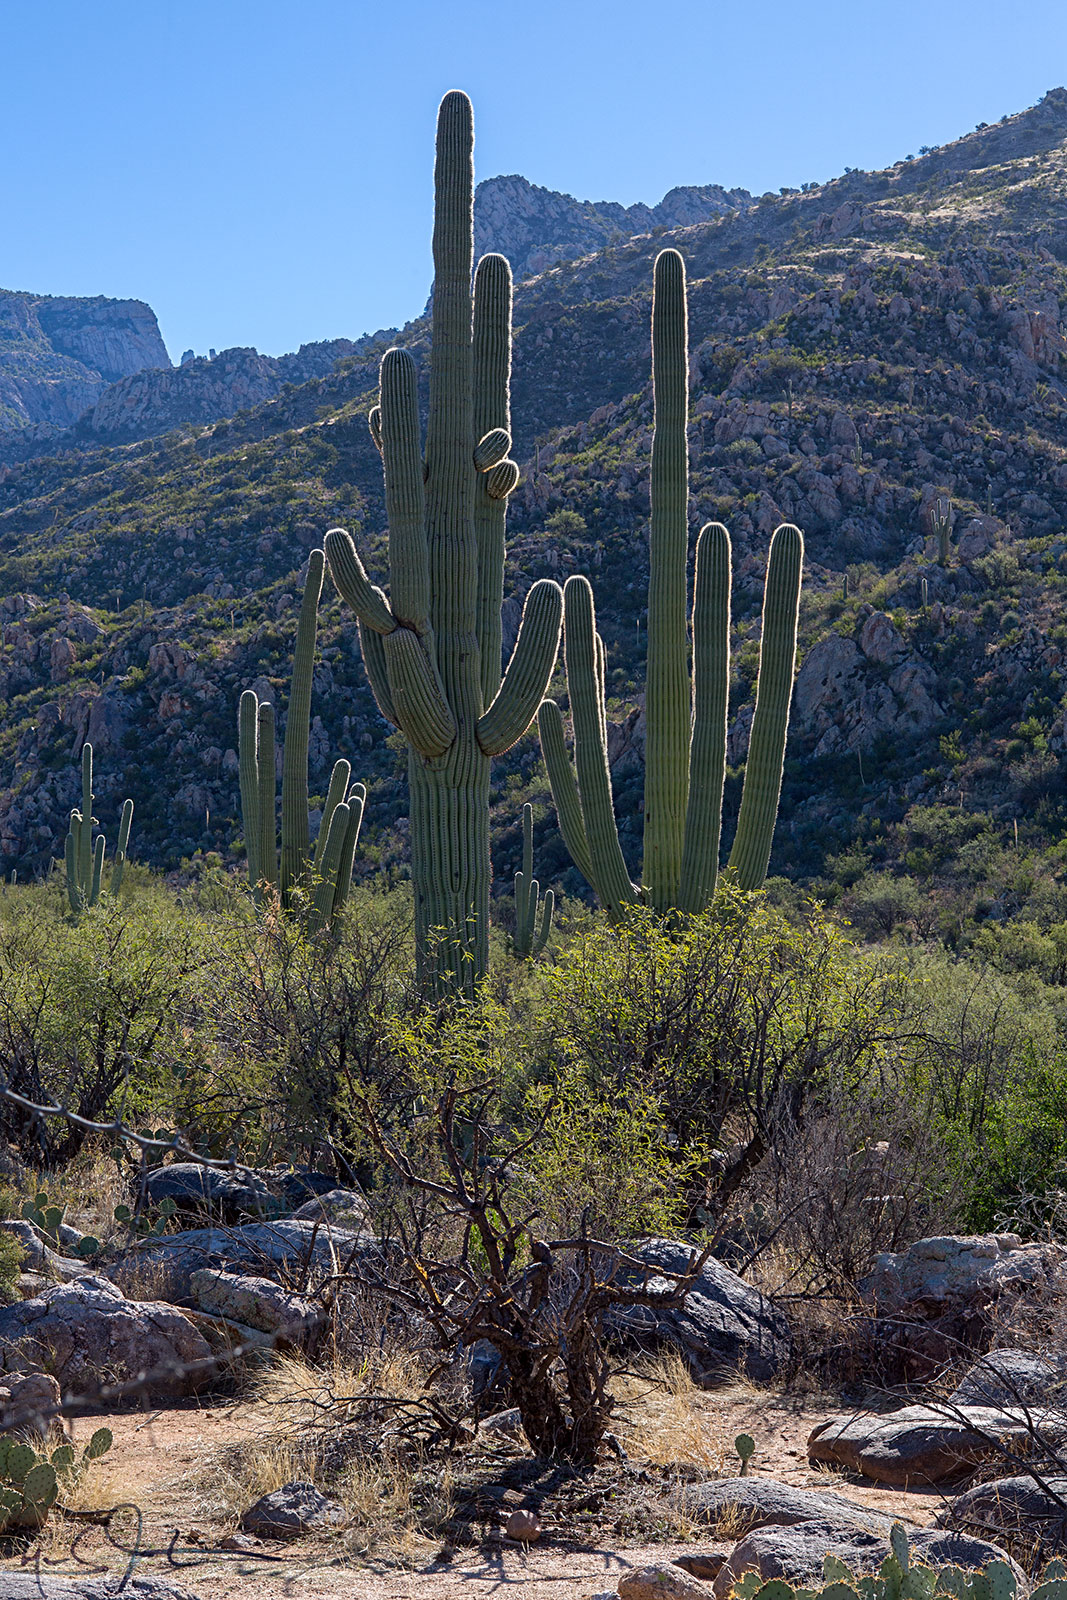 The massive Saguaro cactus, whose seed is so small it is difficult to see with the naked eye, can grow to 60 feet tall, weigh 2 tons, and live well over 100 years.  Their pleated trunks expand and contract as they store and lose water.